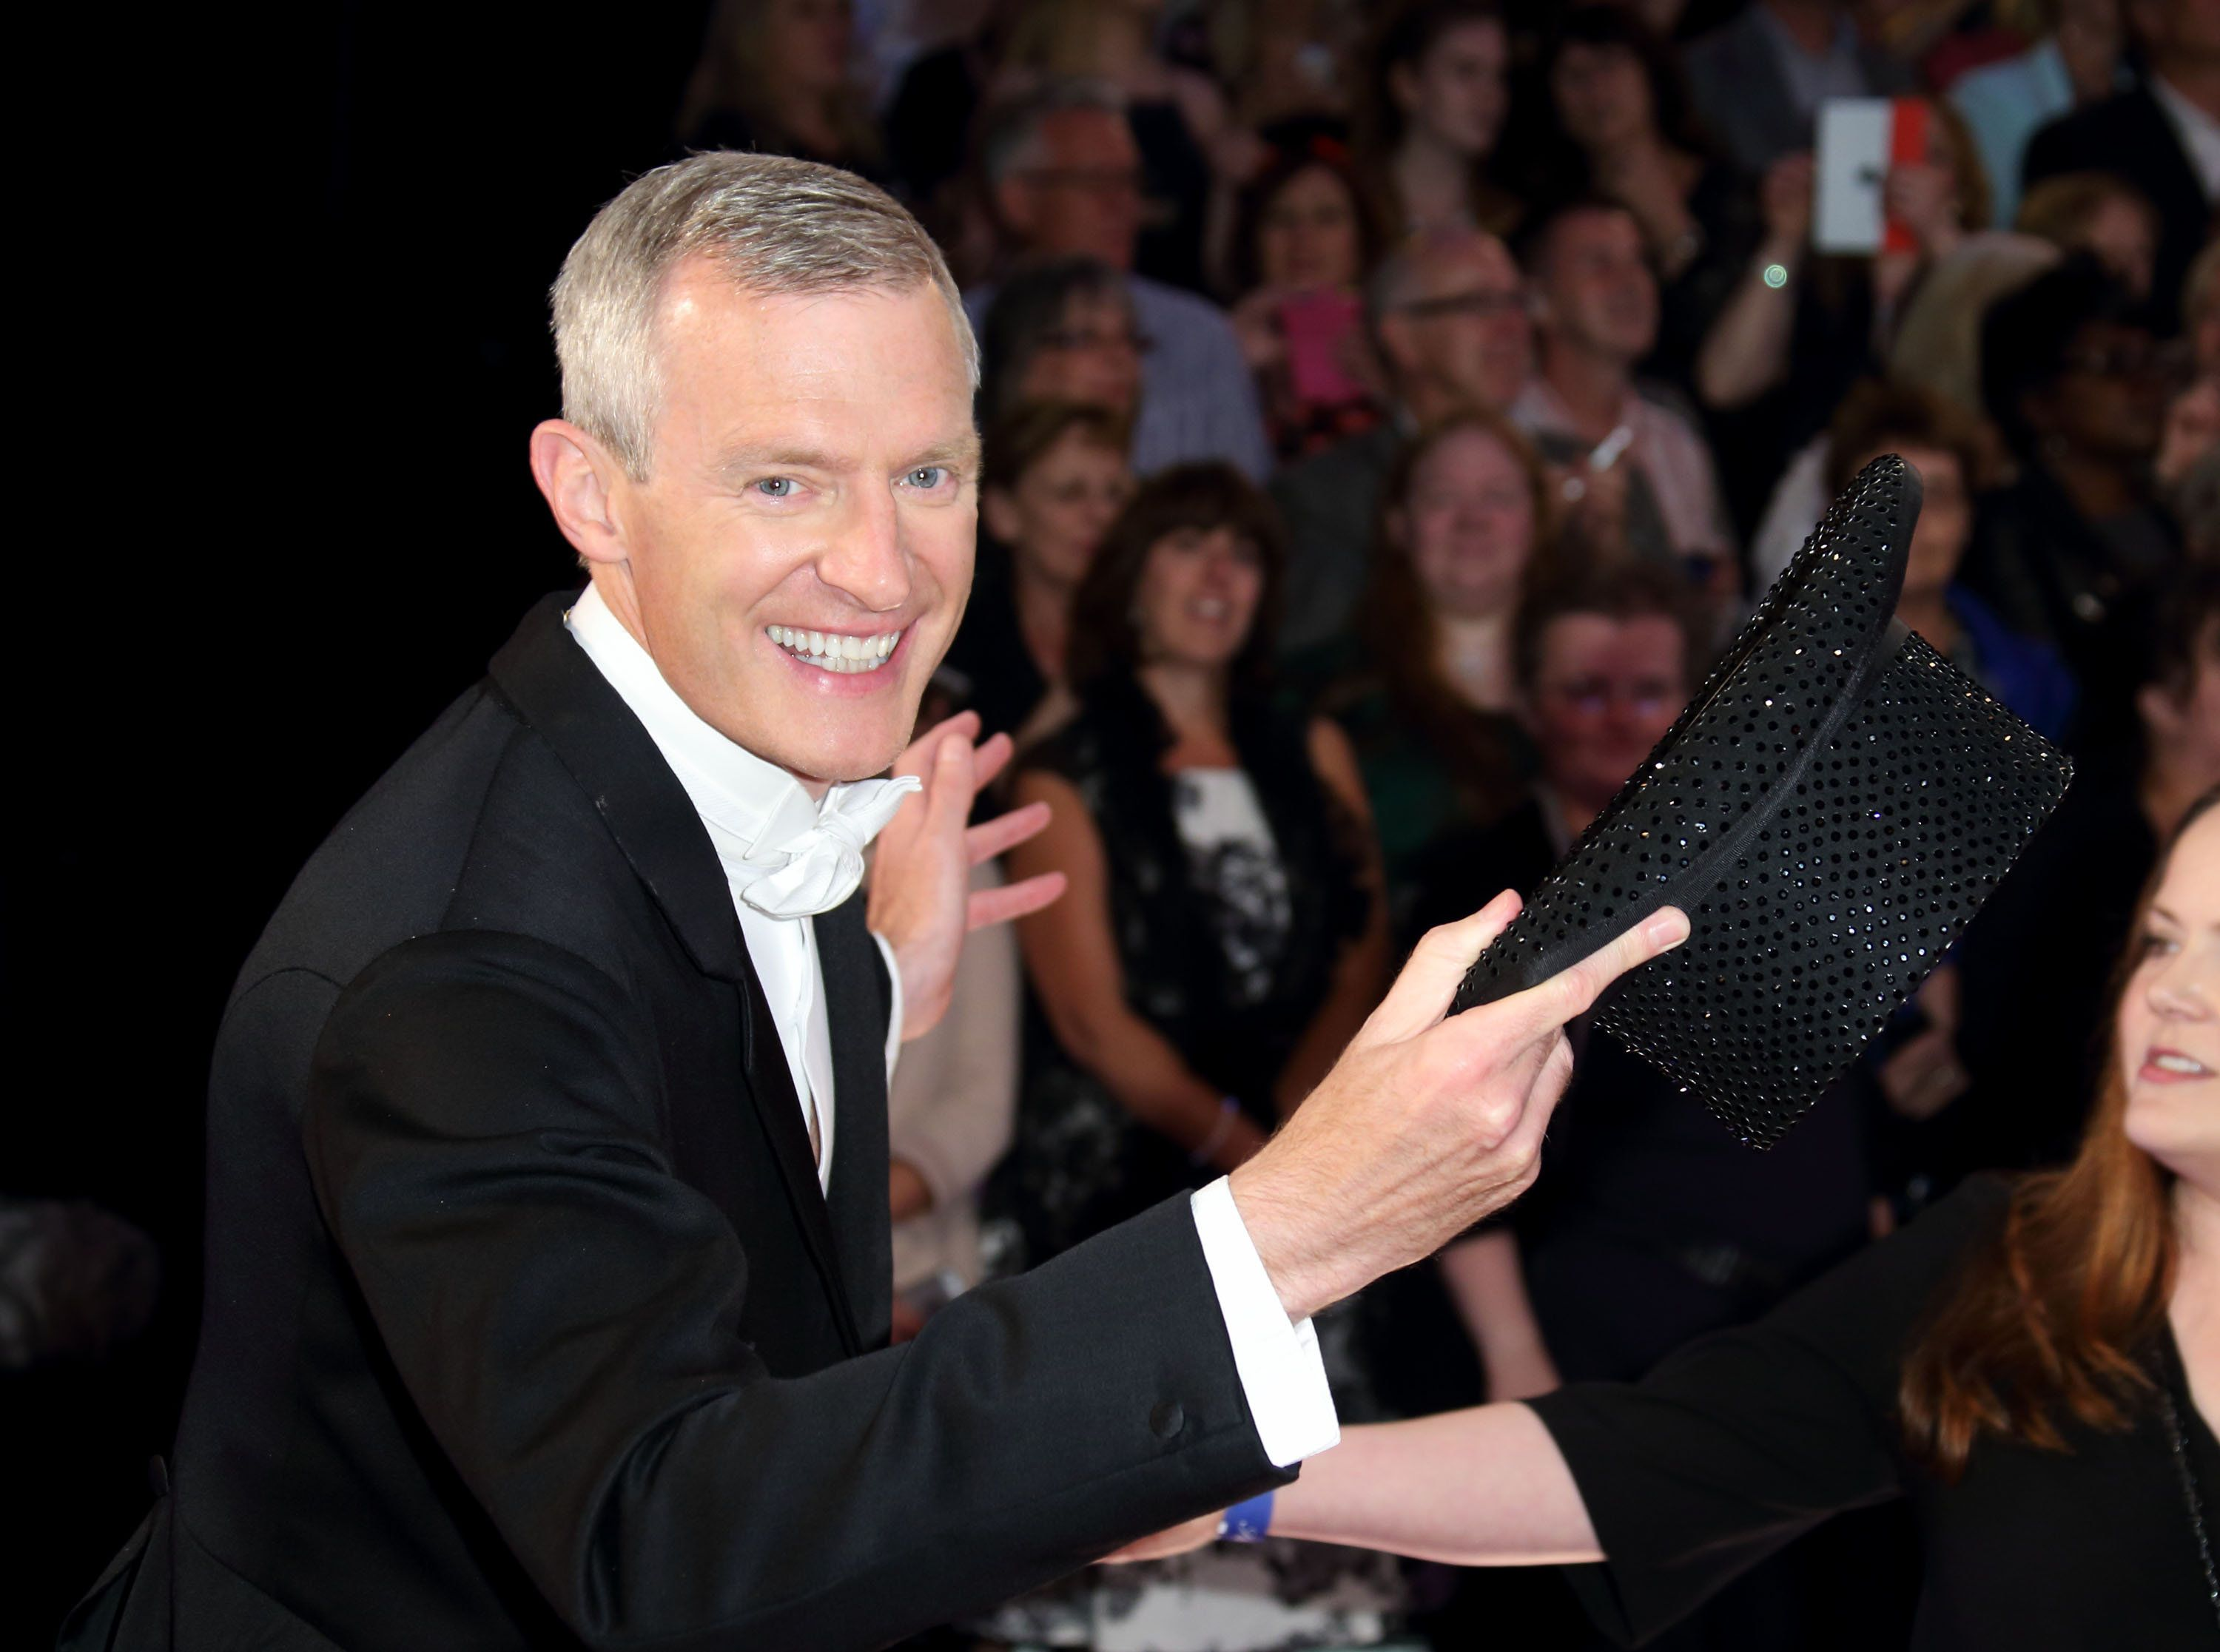 'Multi-Genre' Jeremy Vine Named Among Top BBC